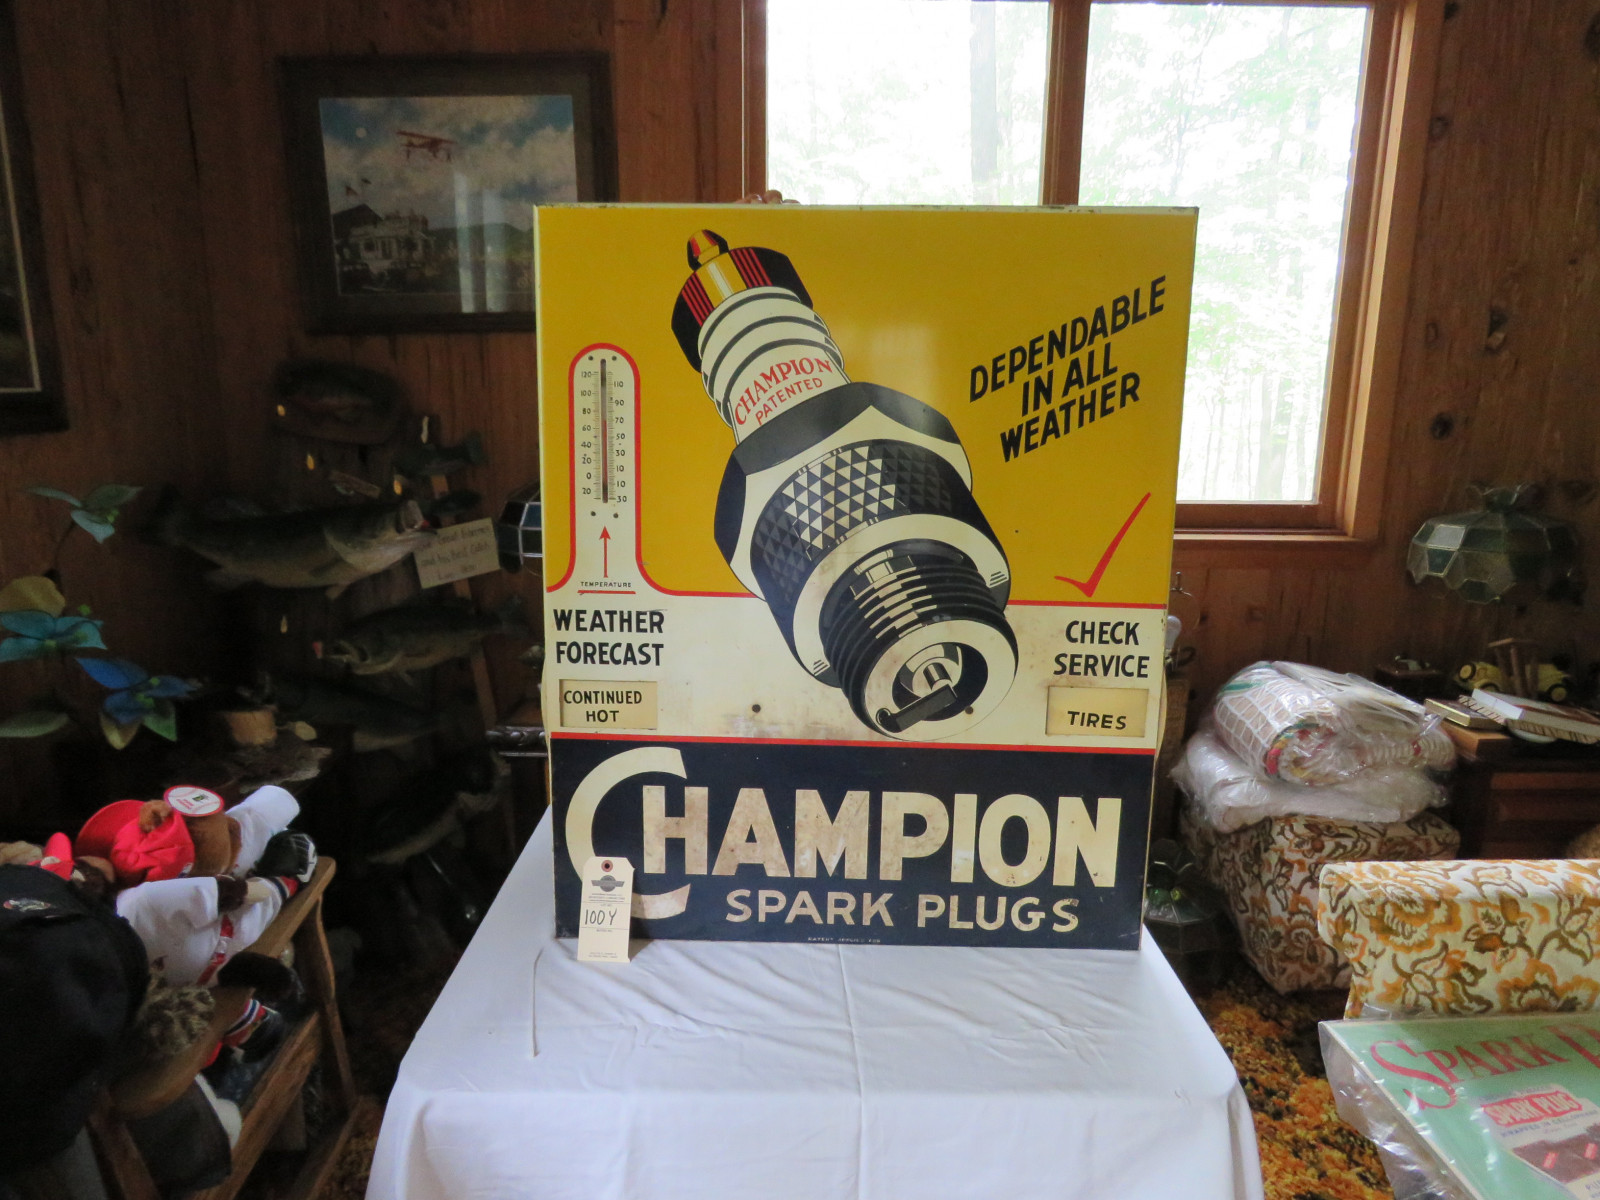 Champion Spark Plugs 28x34 Single Sided Painted Tin Sign - Image 1